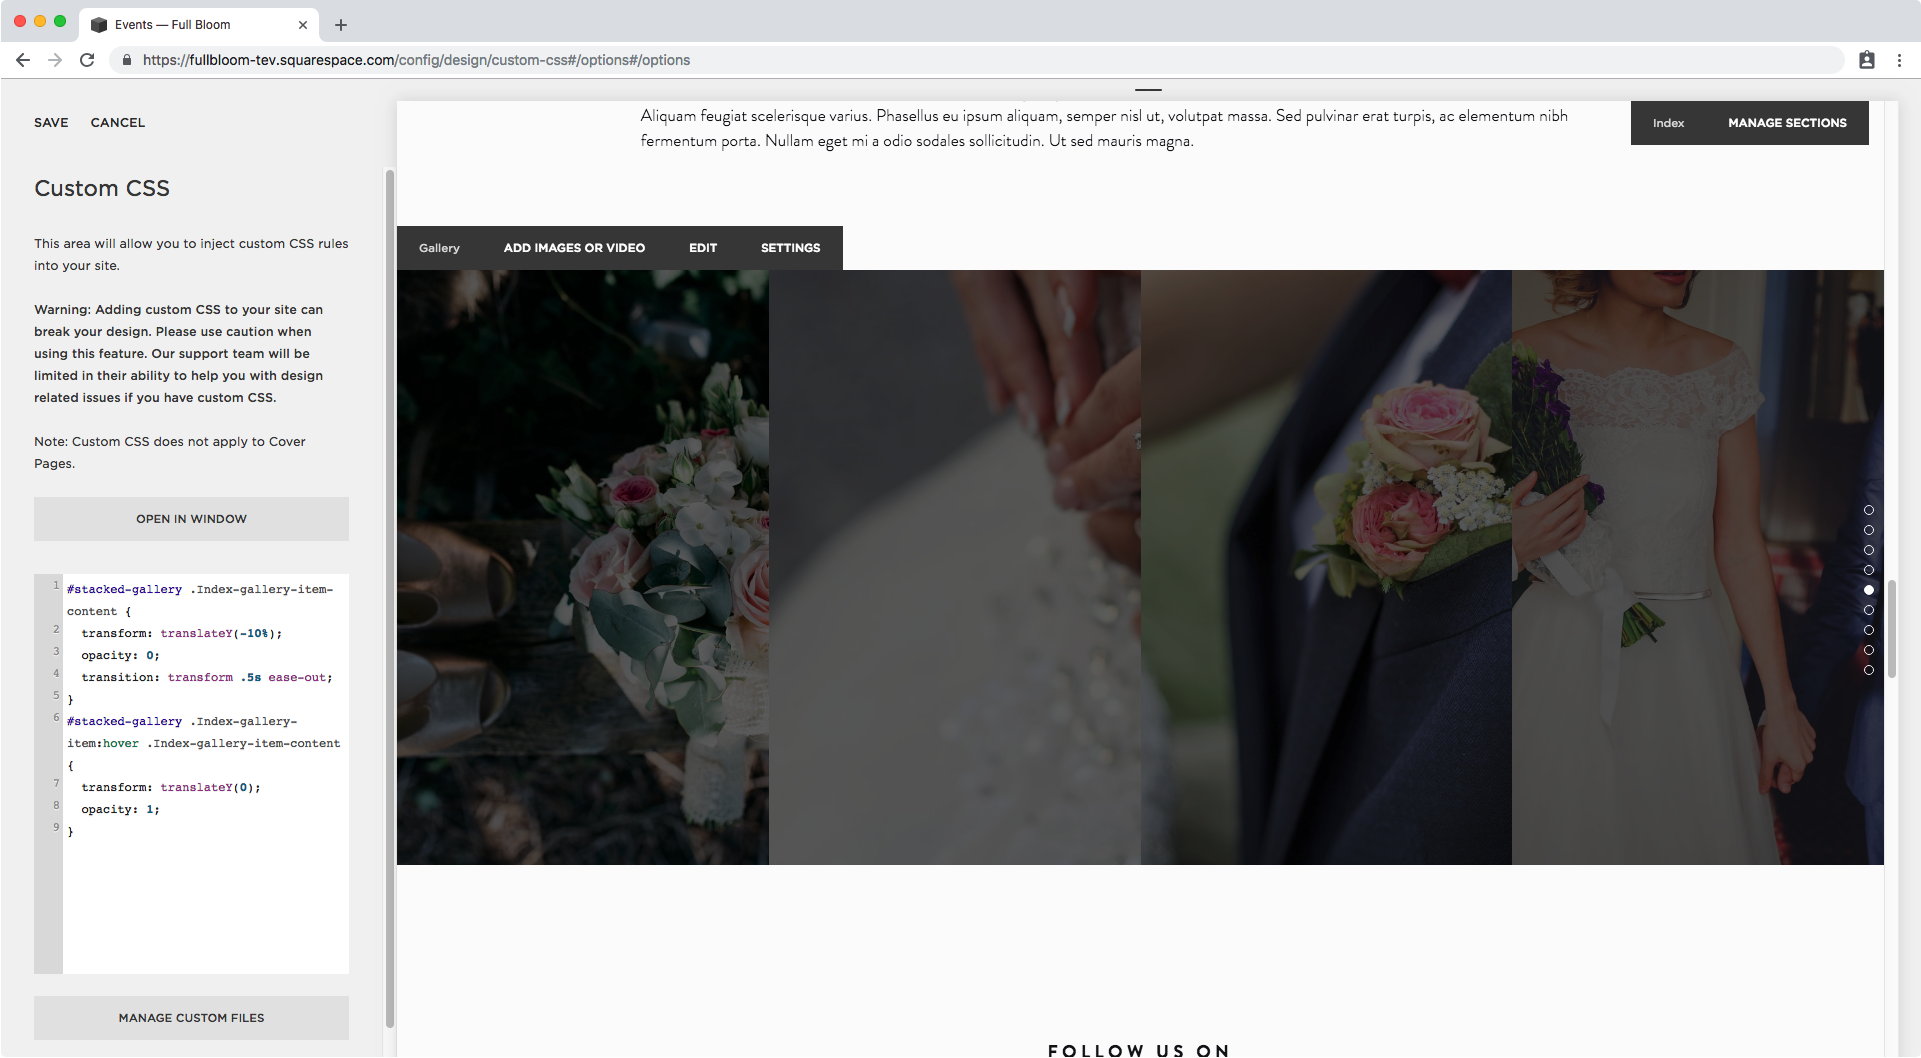 14. Make text for images of gallery index show up on hover.png